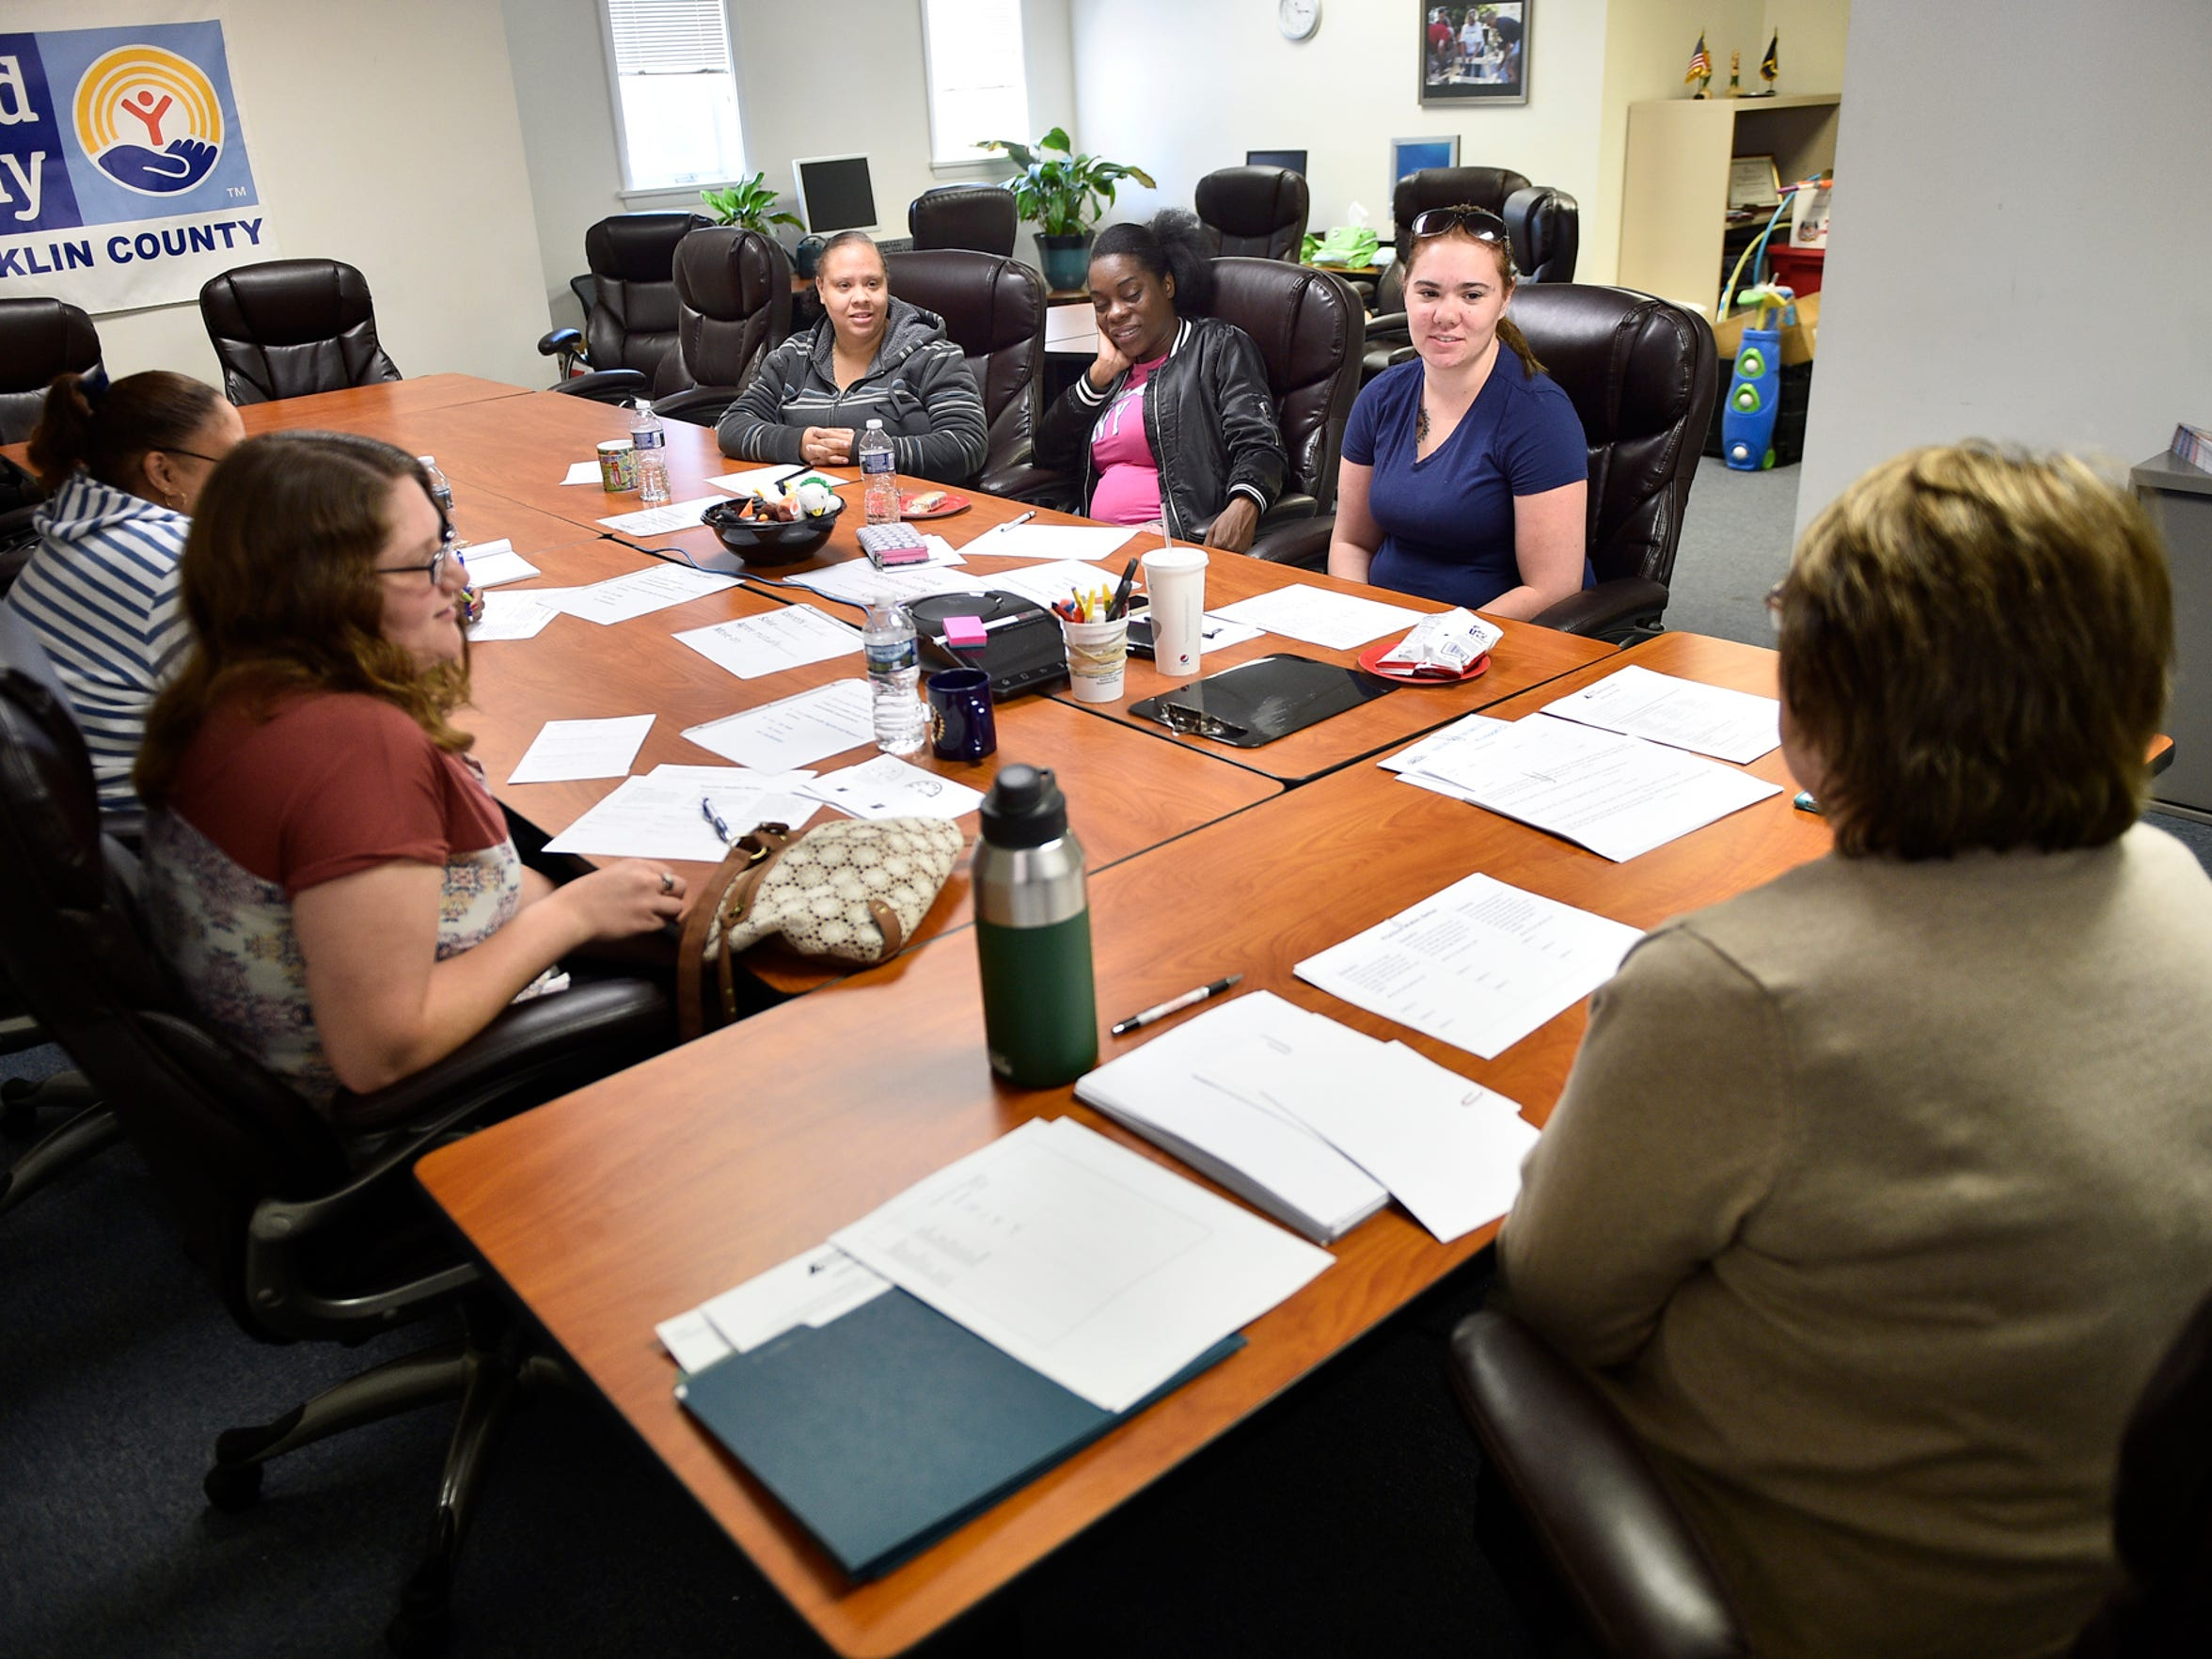 Cheri Kearney, right,  leads a class to help students